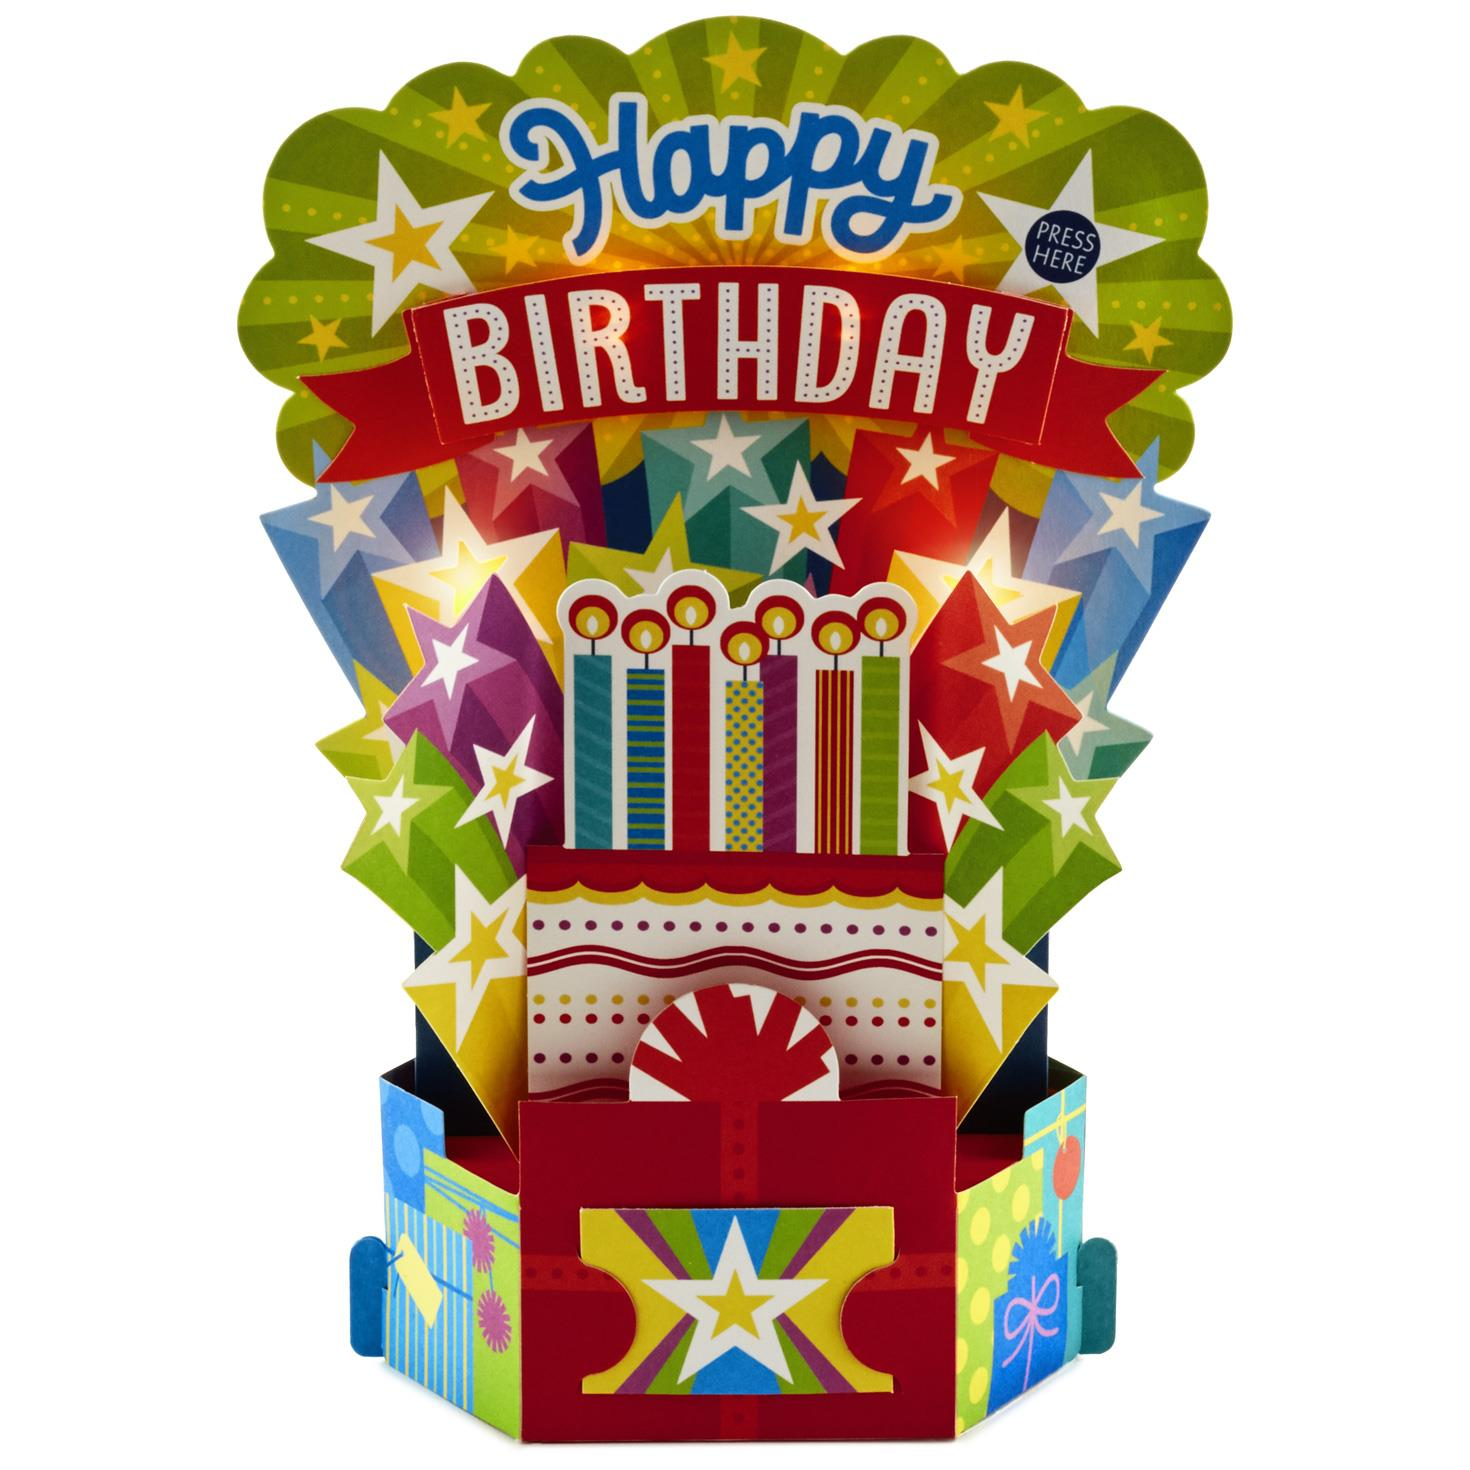 birthday cake with candles pop up musical birthday card